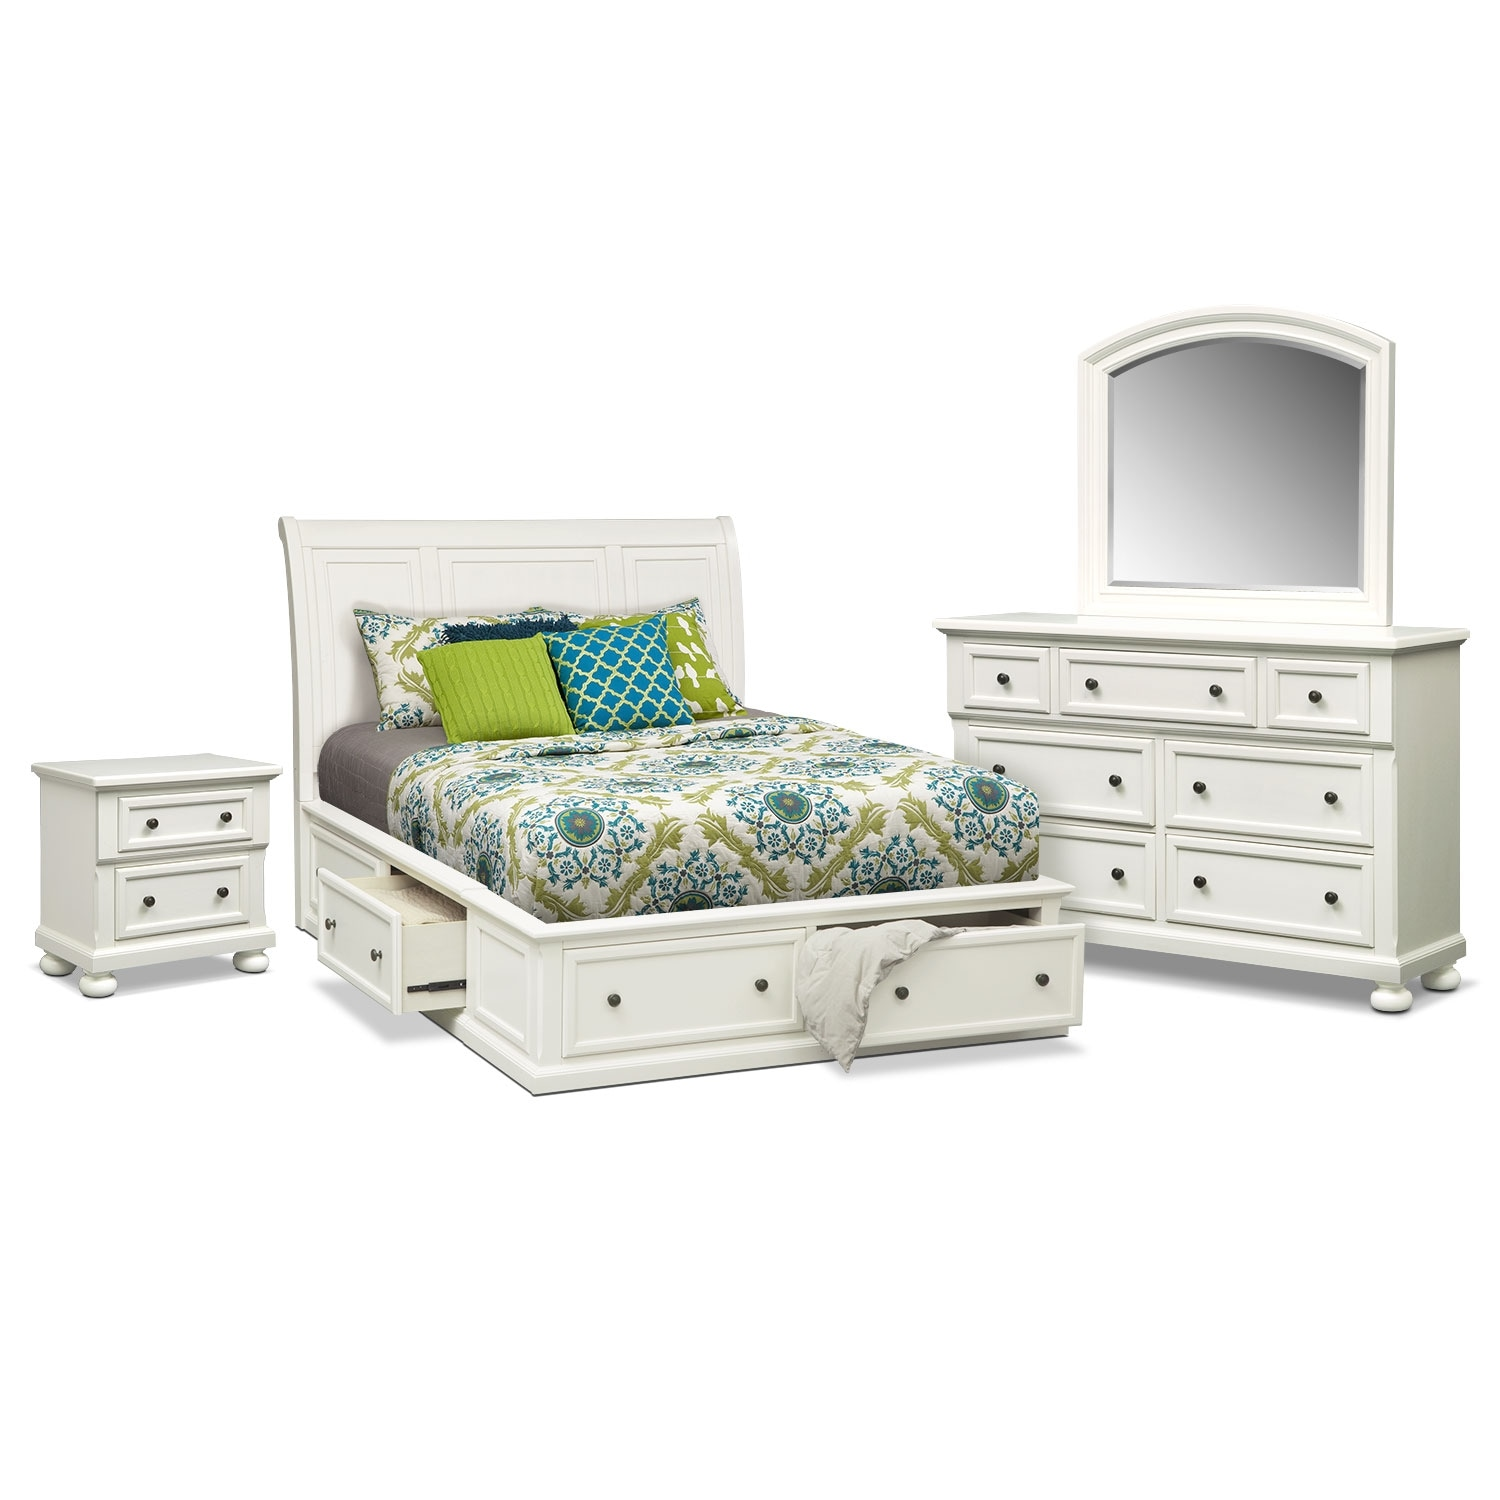 Bedroom Furniture - Hanover White 6 Pc. King Storage Bedroom Package